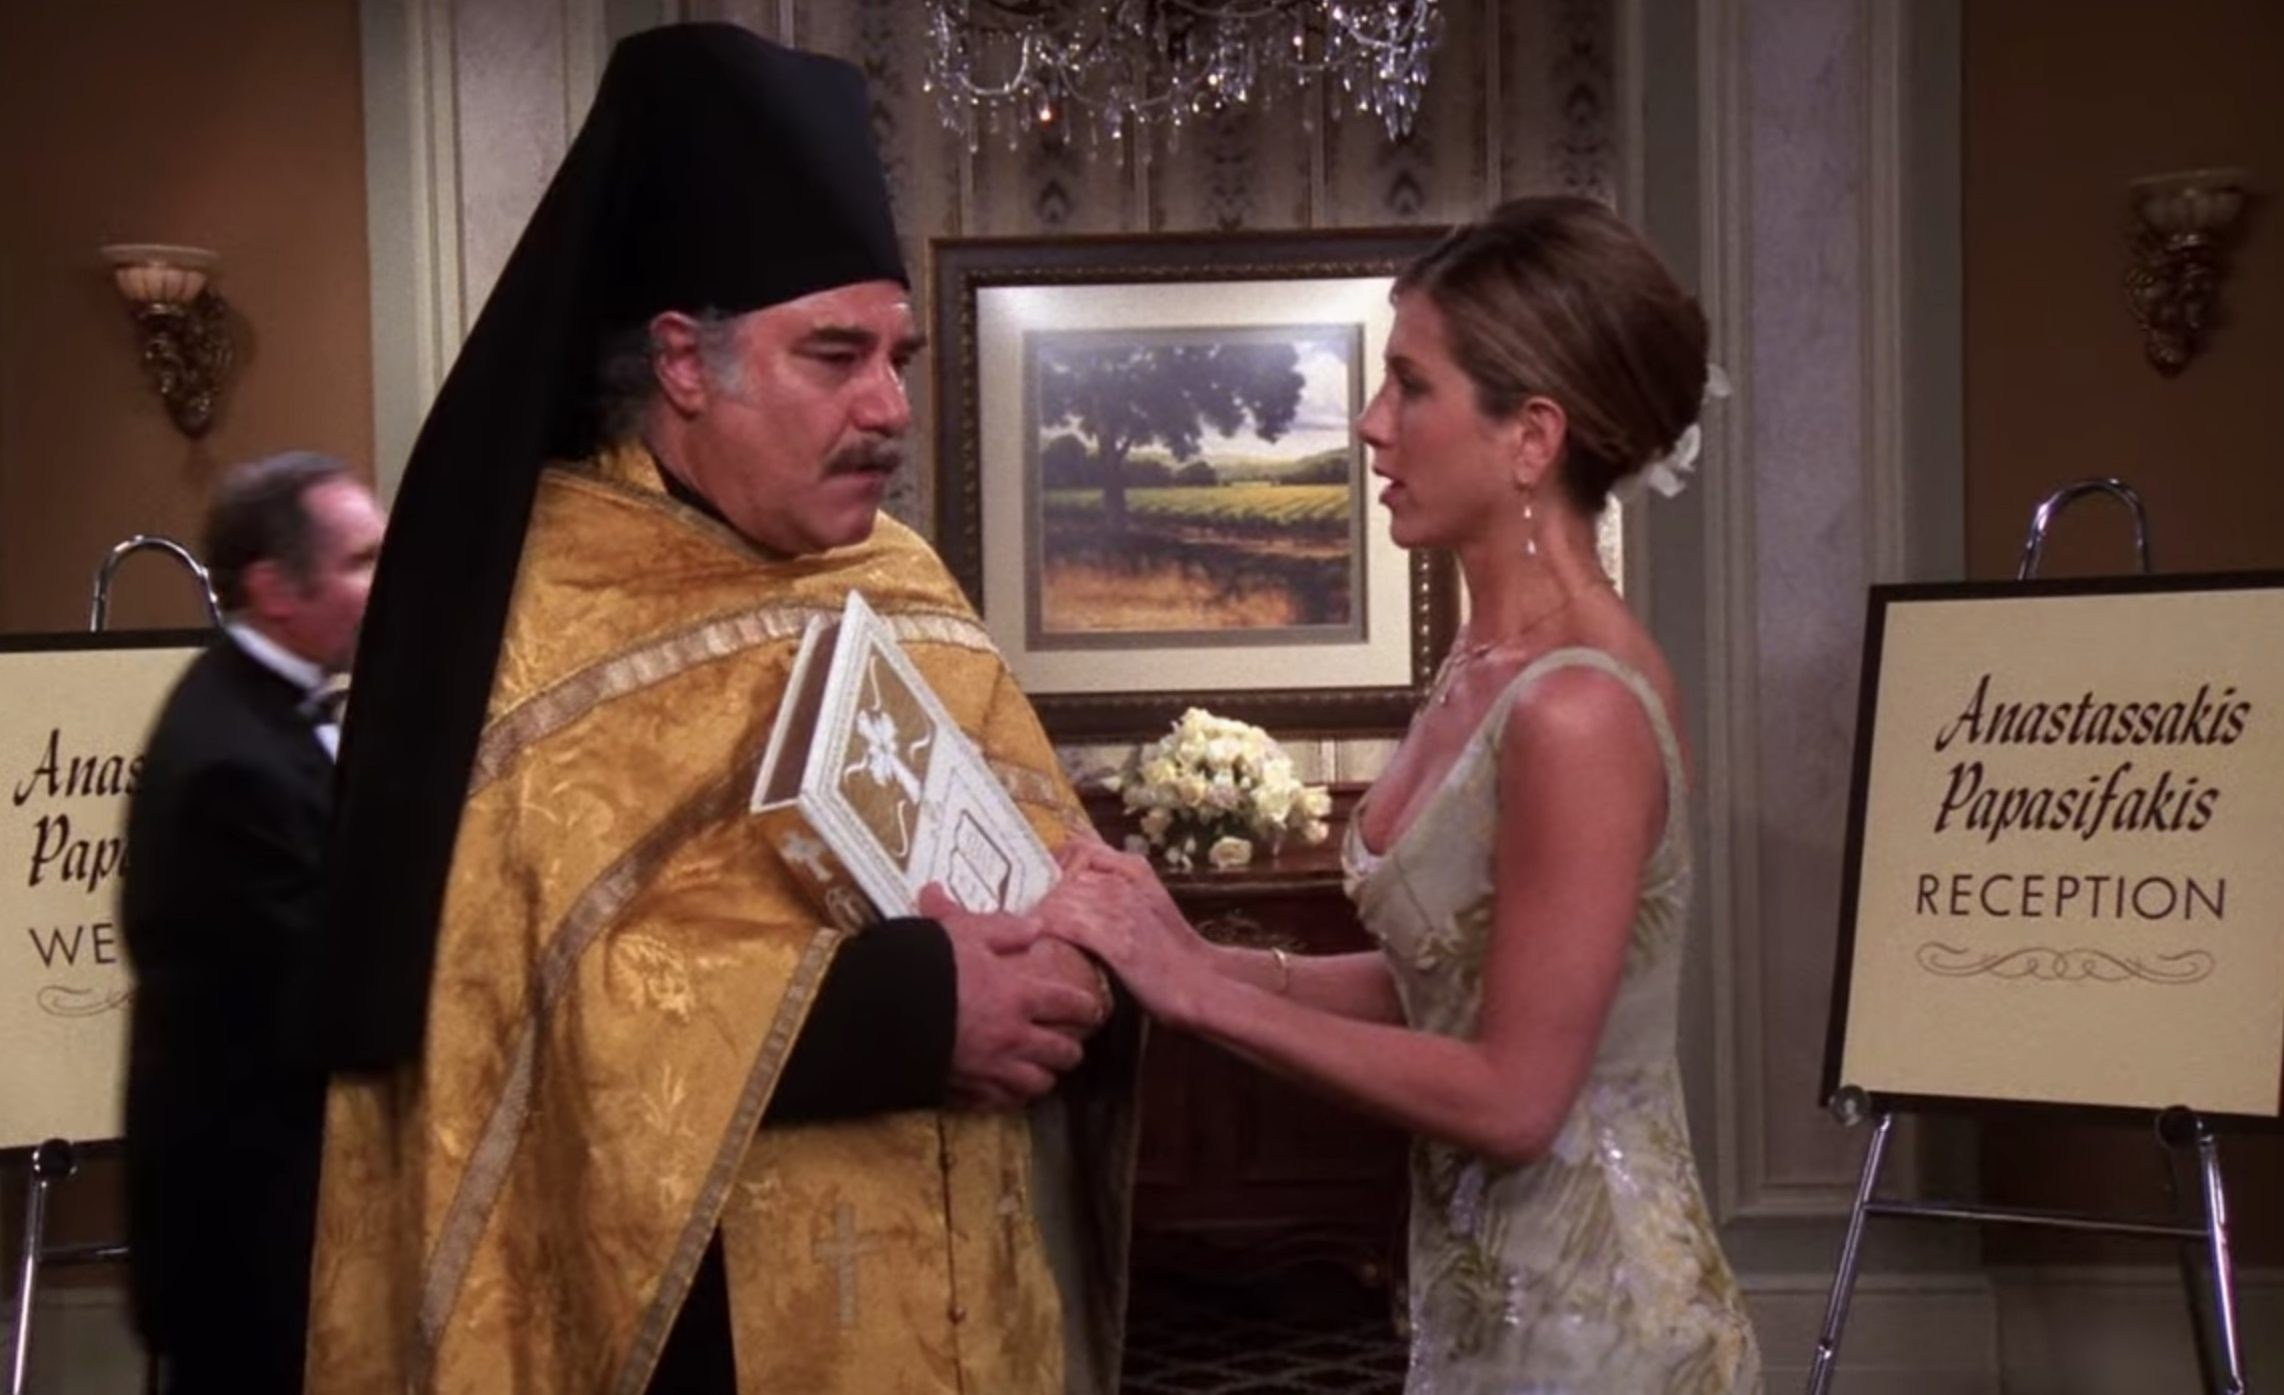 Friends' easter egg at Chandler and Monica's wedding gives sweet nod to Jennifer Aniston's heritage